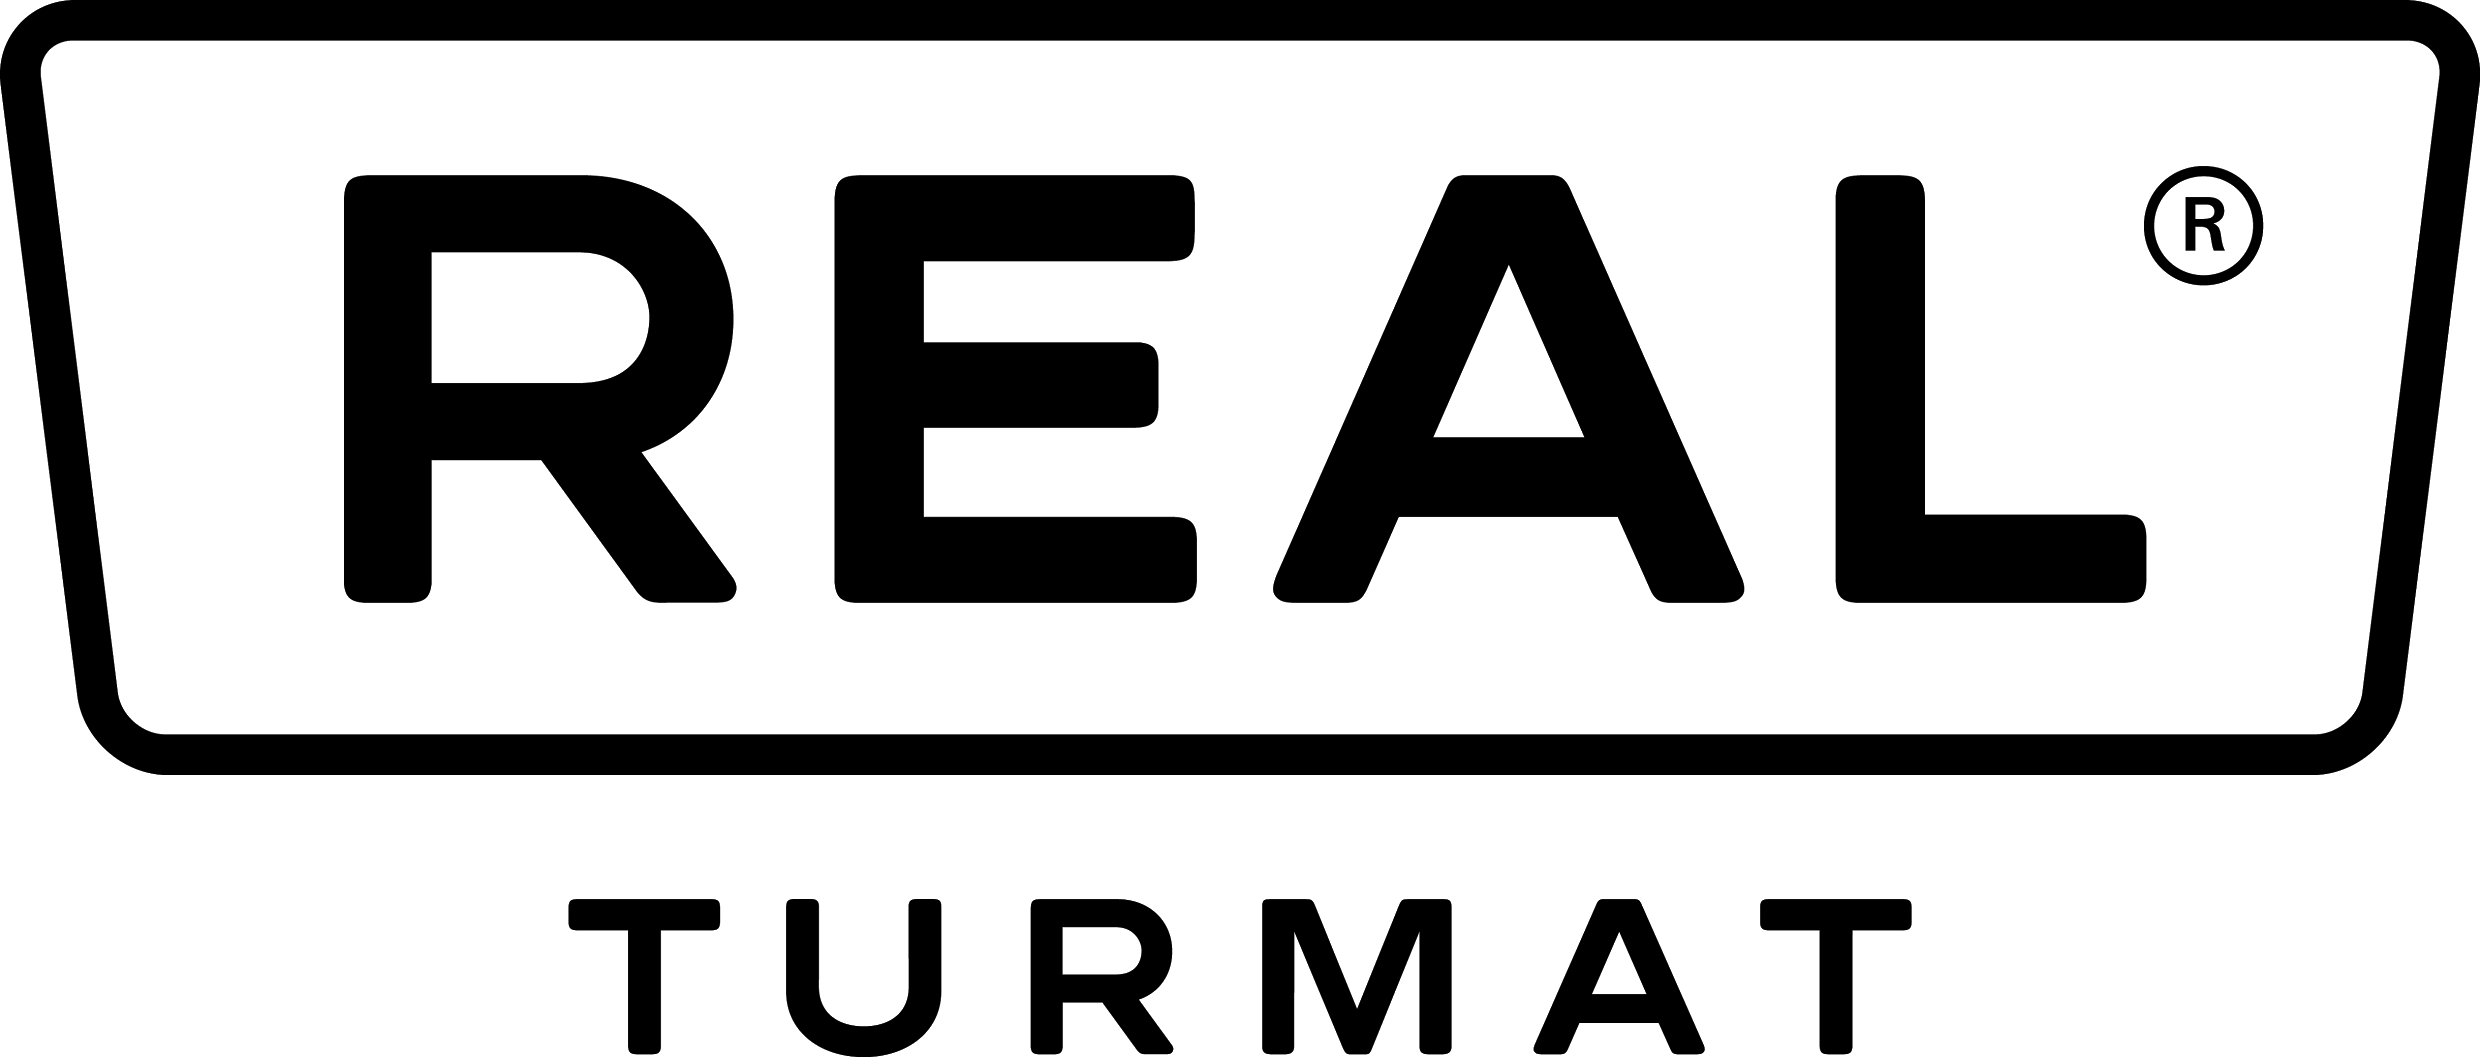 real-turmat-logo-black.png